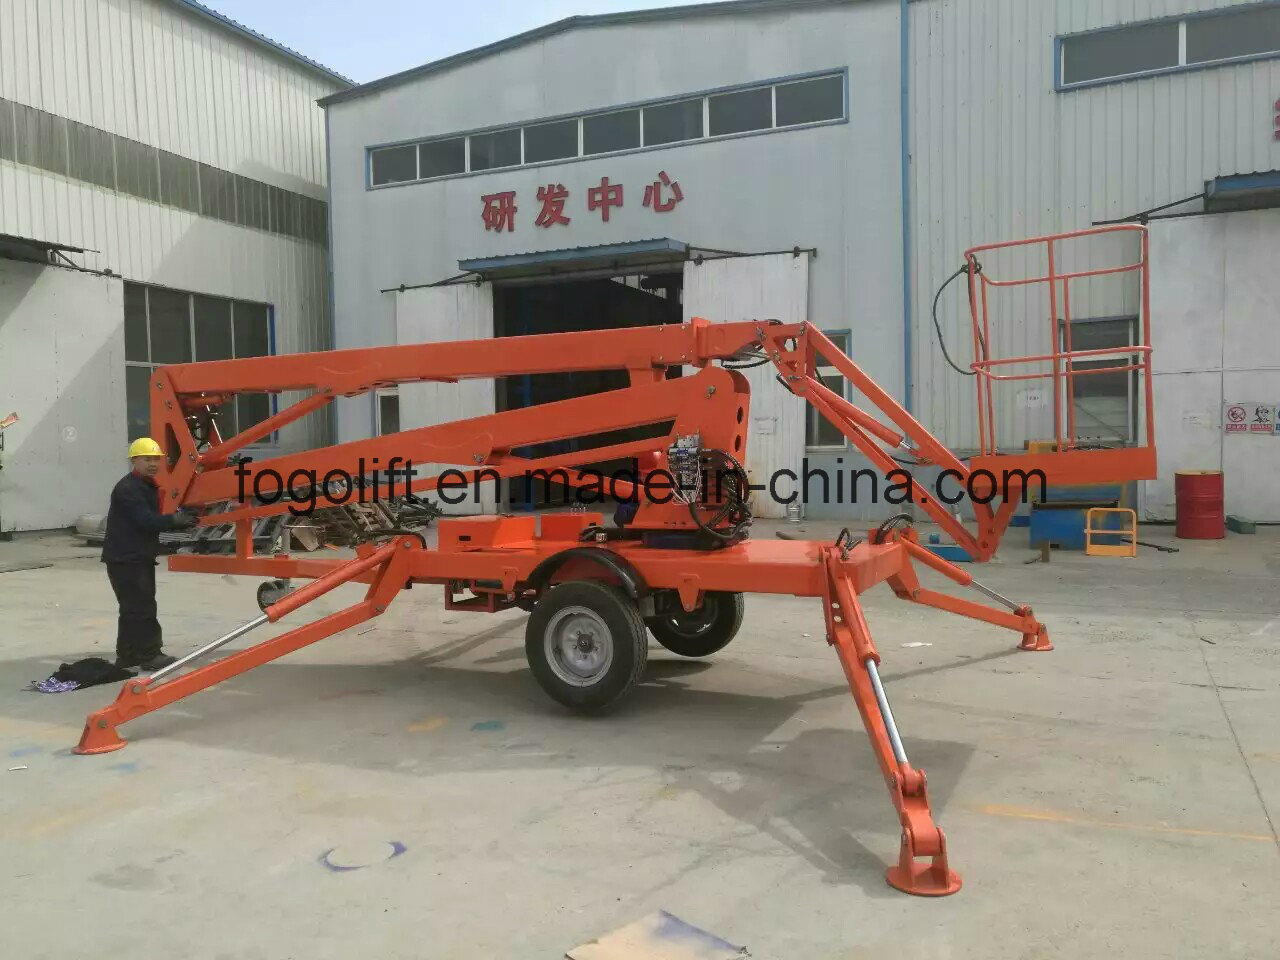 Top Sale! ! Articulated Towable Boom Lift Trailer Mounted Cherry Picker Man Lift for Sale